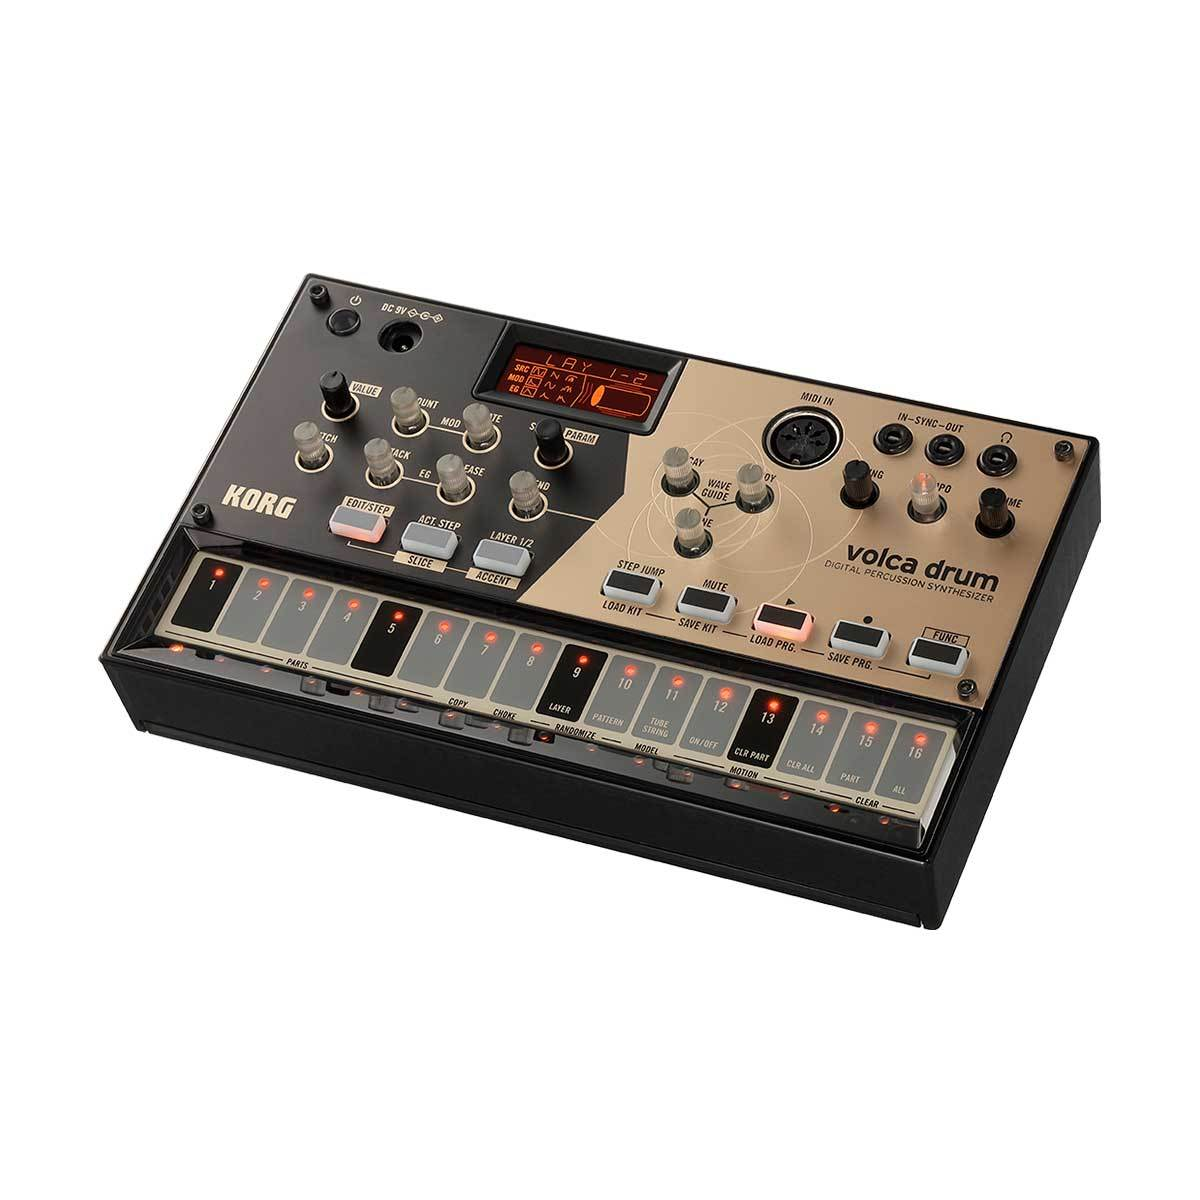 Drum Machines - Korg Volca Drum Digital Percussion Synthesizer